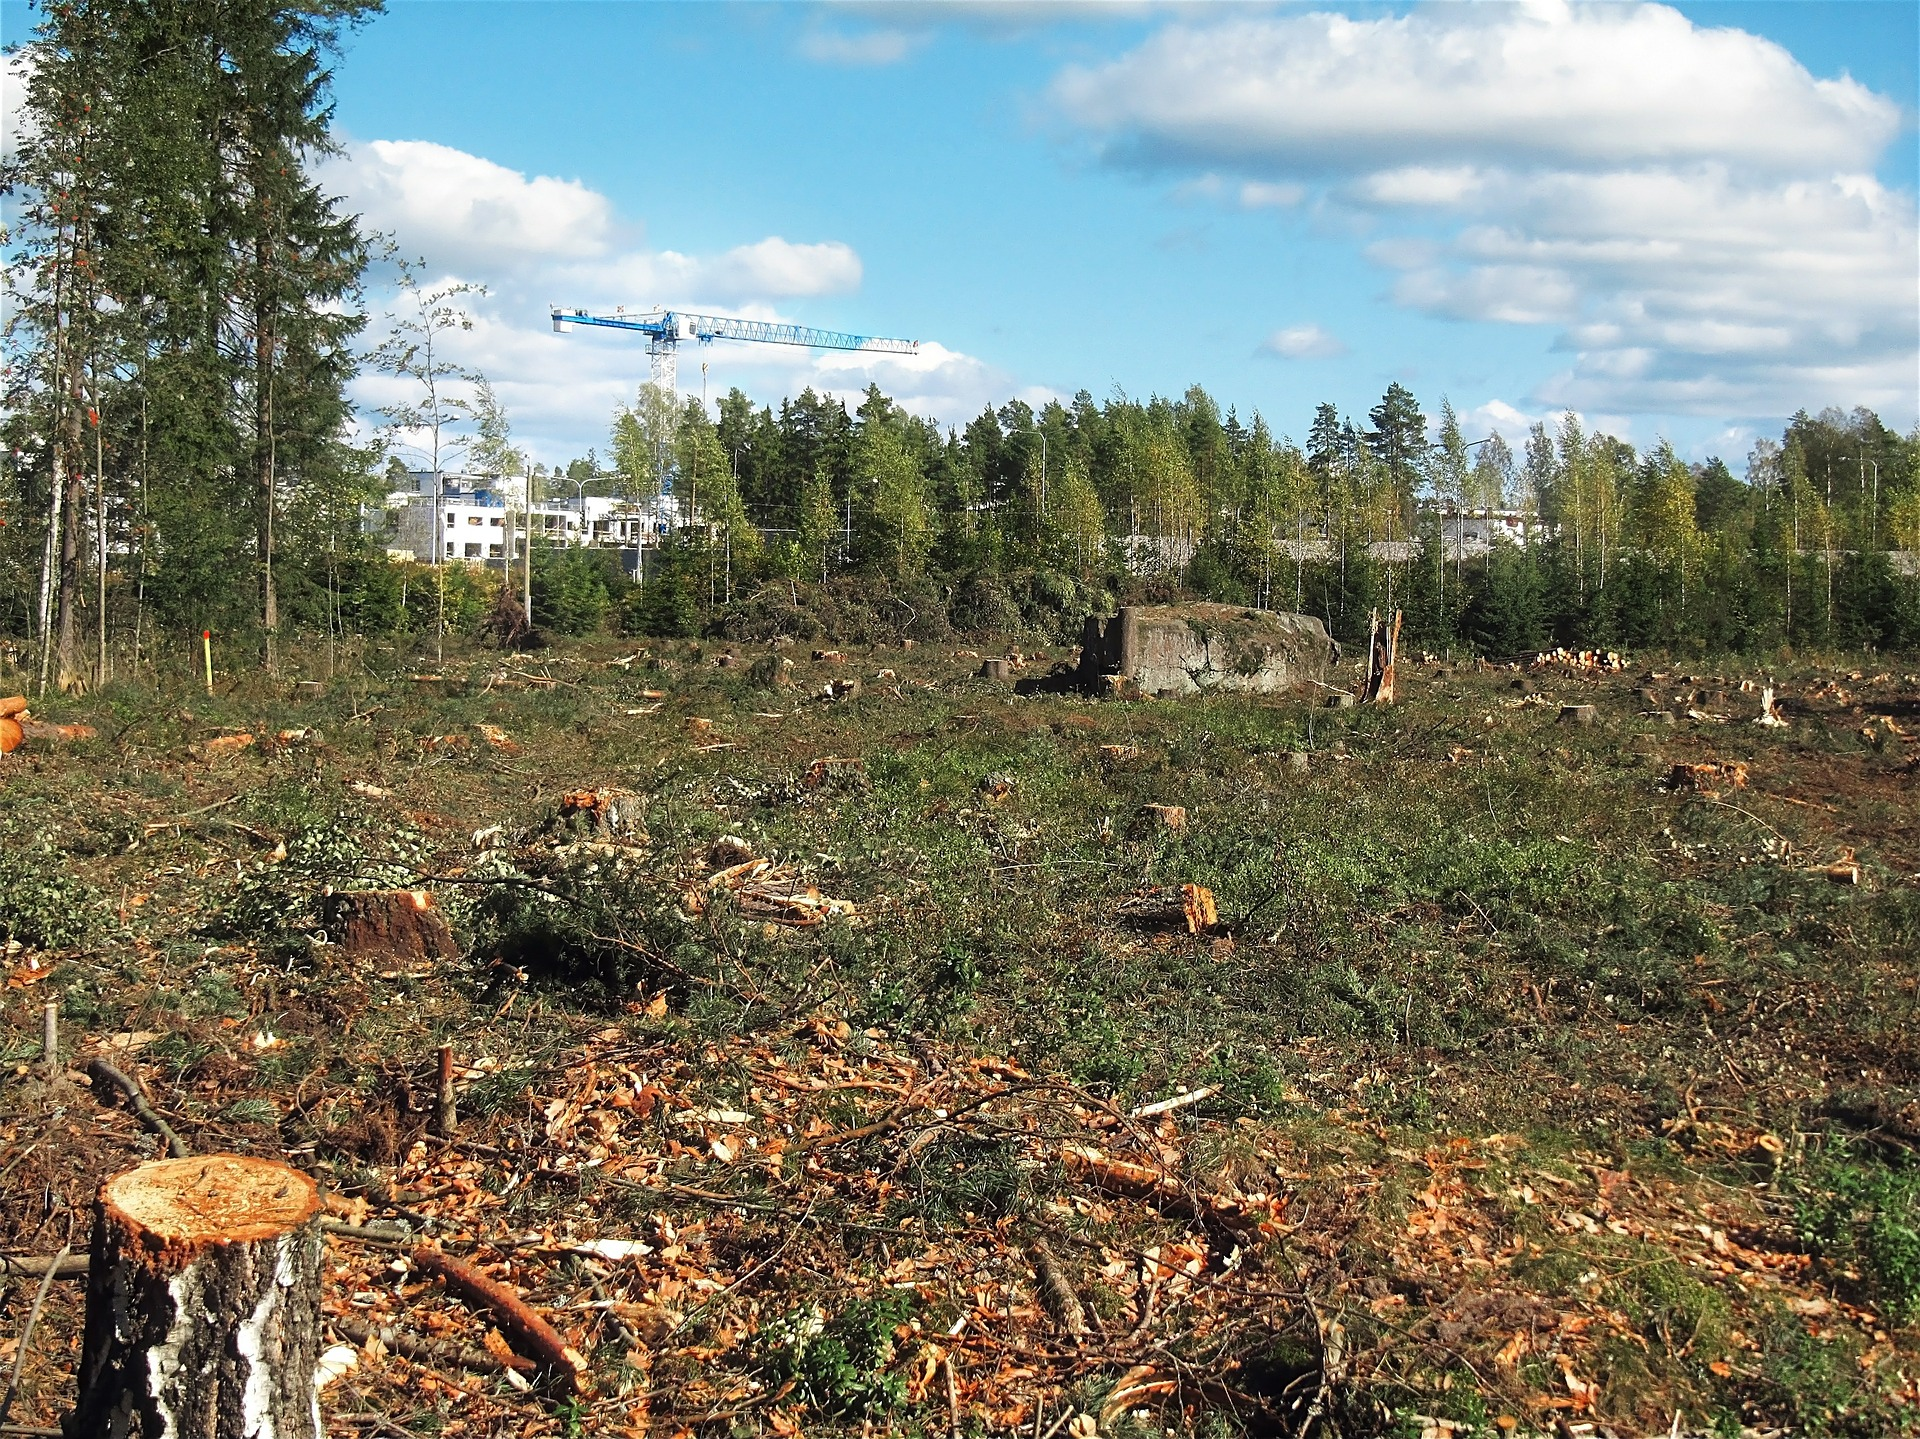 deforested-574185_1920.jpg